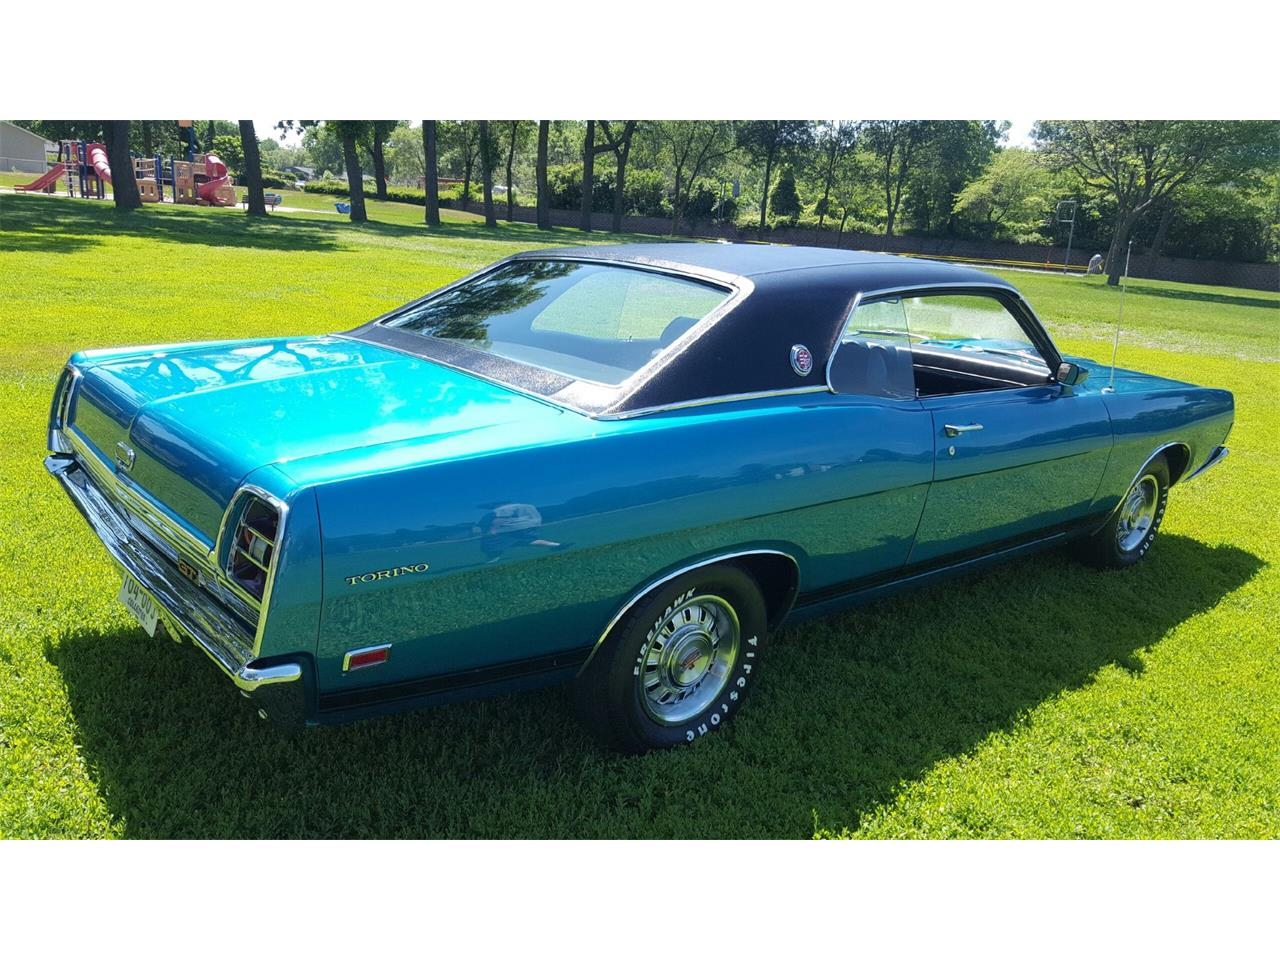 Large Picture of 1969 Ford Torino located in Annandale Minnesota Auction Vehicle Offered by Classic Rides and Rods - L8I4